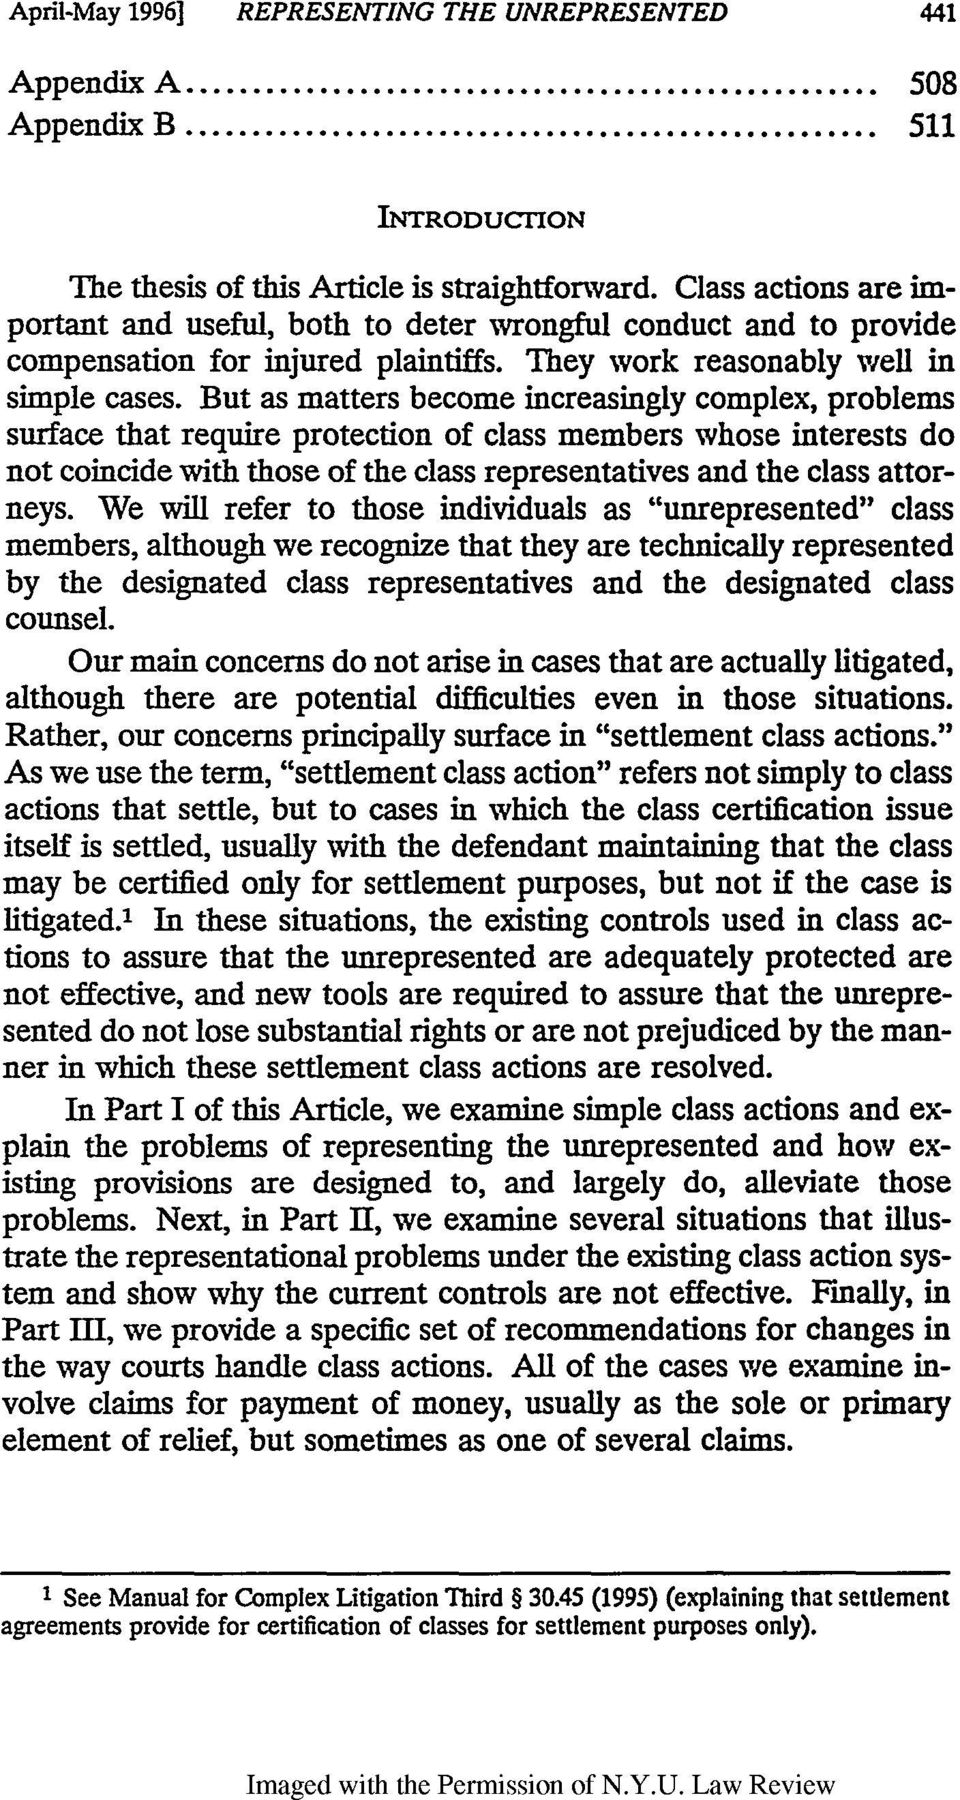 But as matters become increasingly complex, problems surface that require protection of class members whose interests do not coincide with those of the class representatives and the class attorneys.